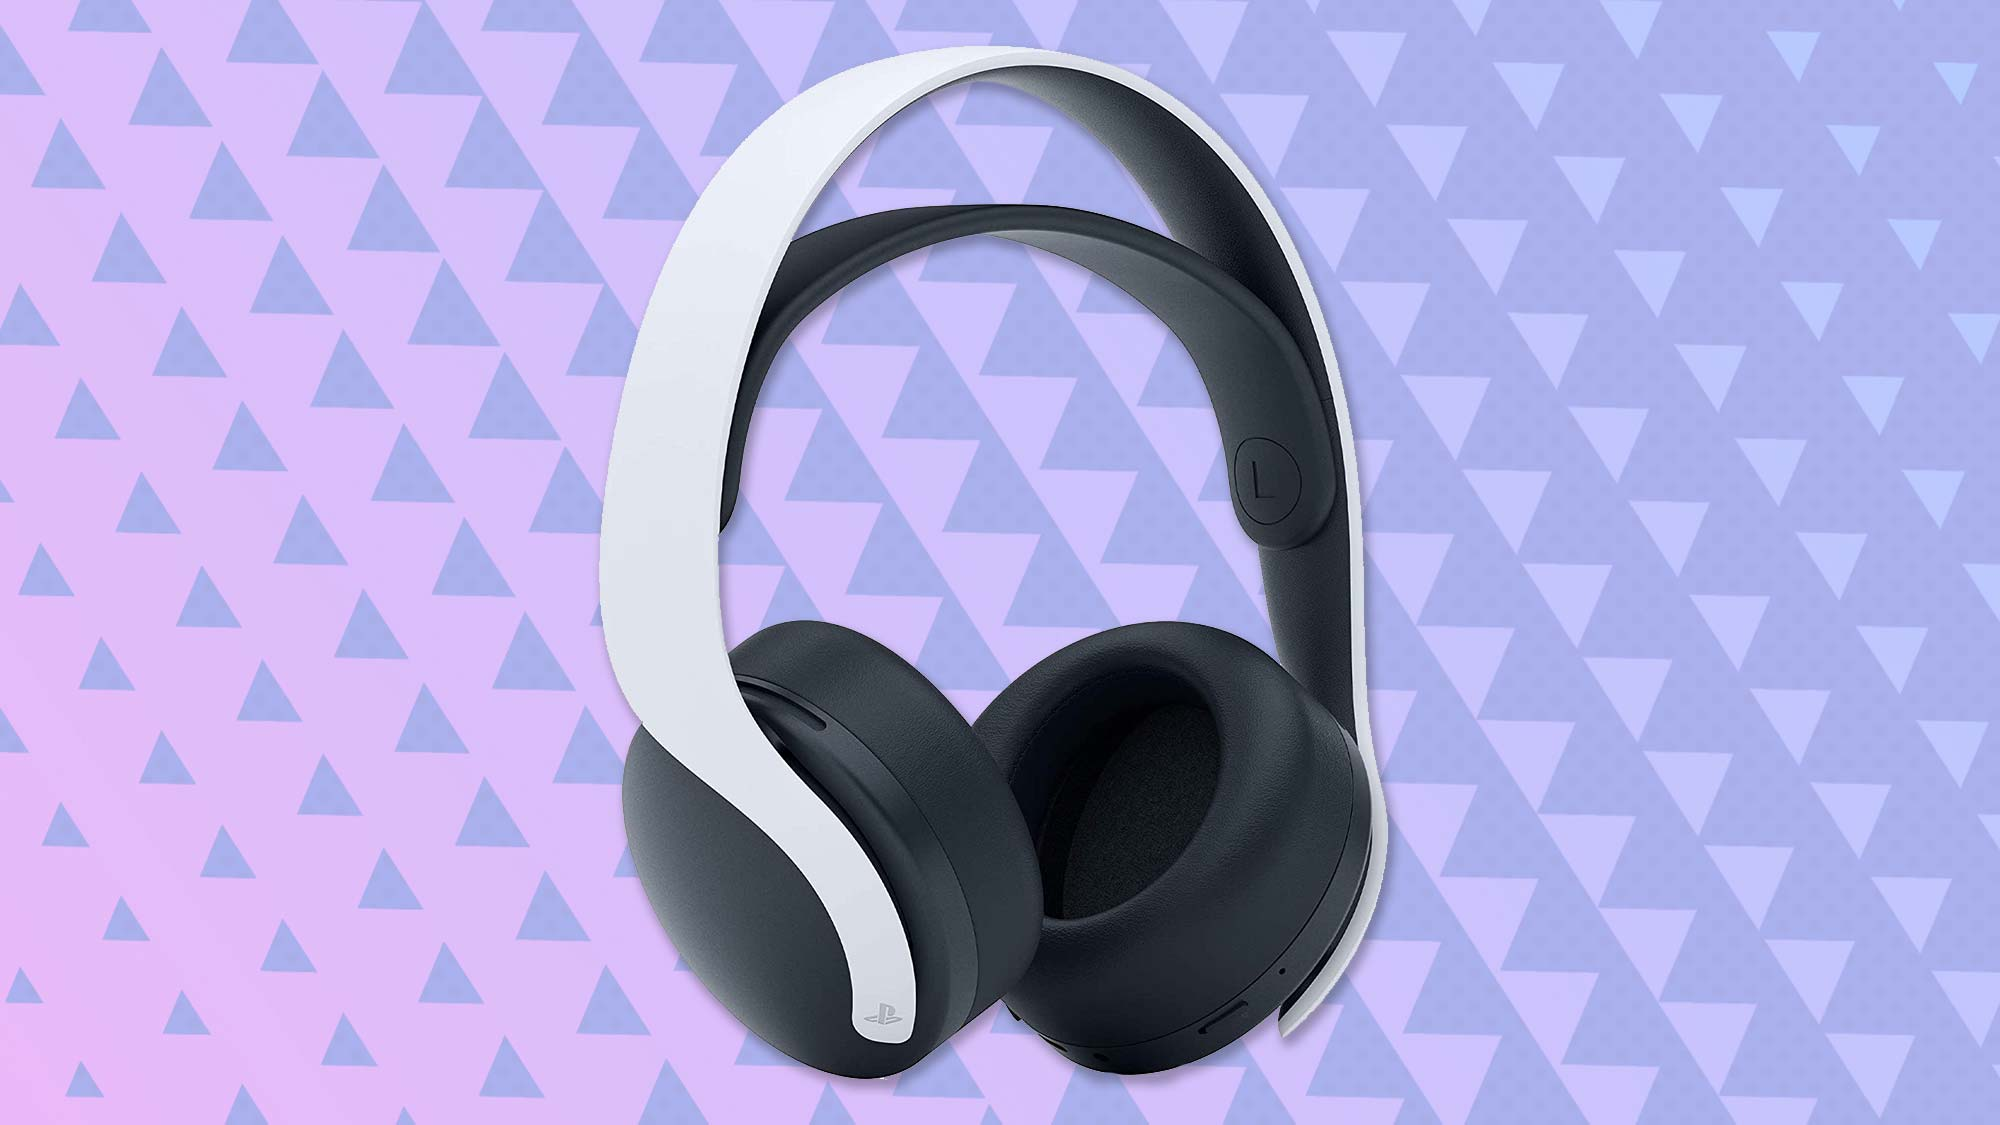 Best headsets for PS5: Sony Pulse 3D Wireless Headset